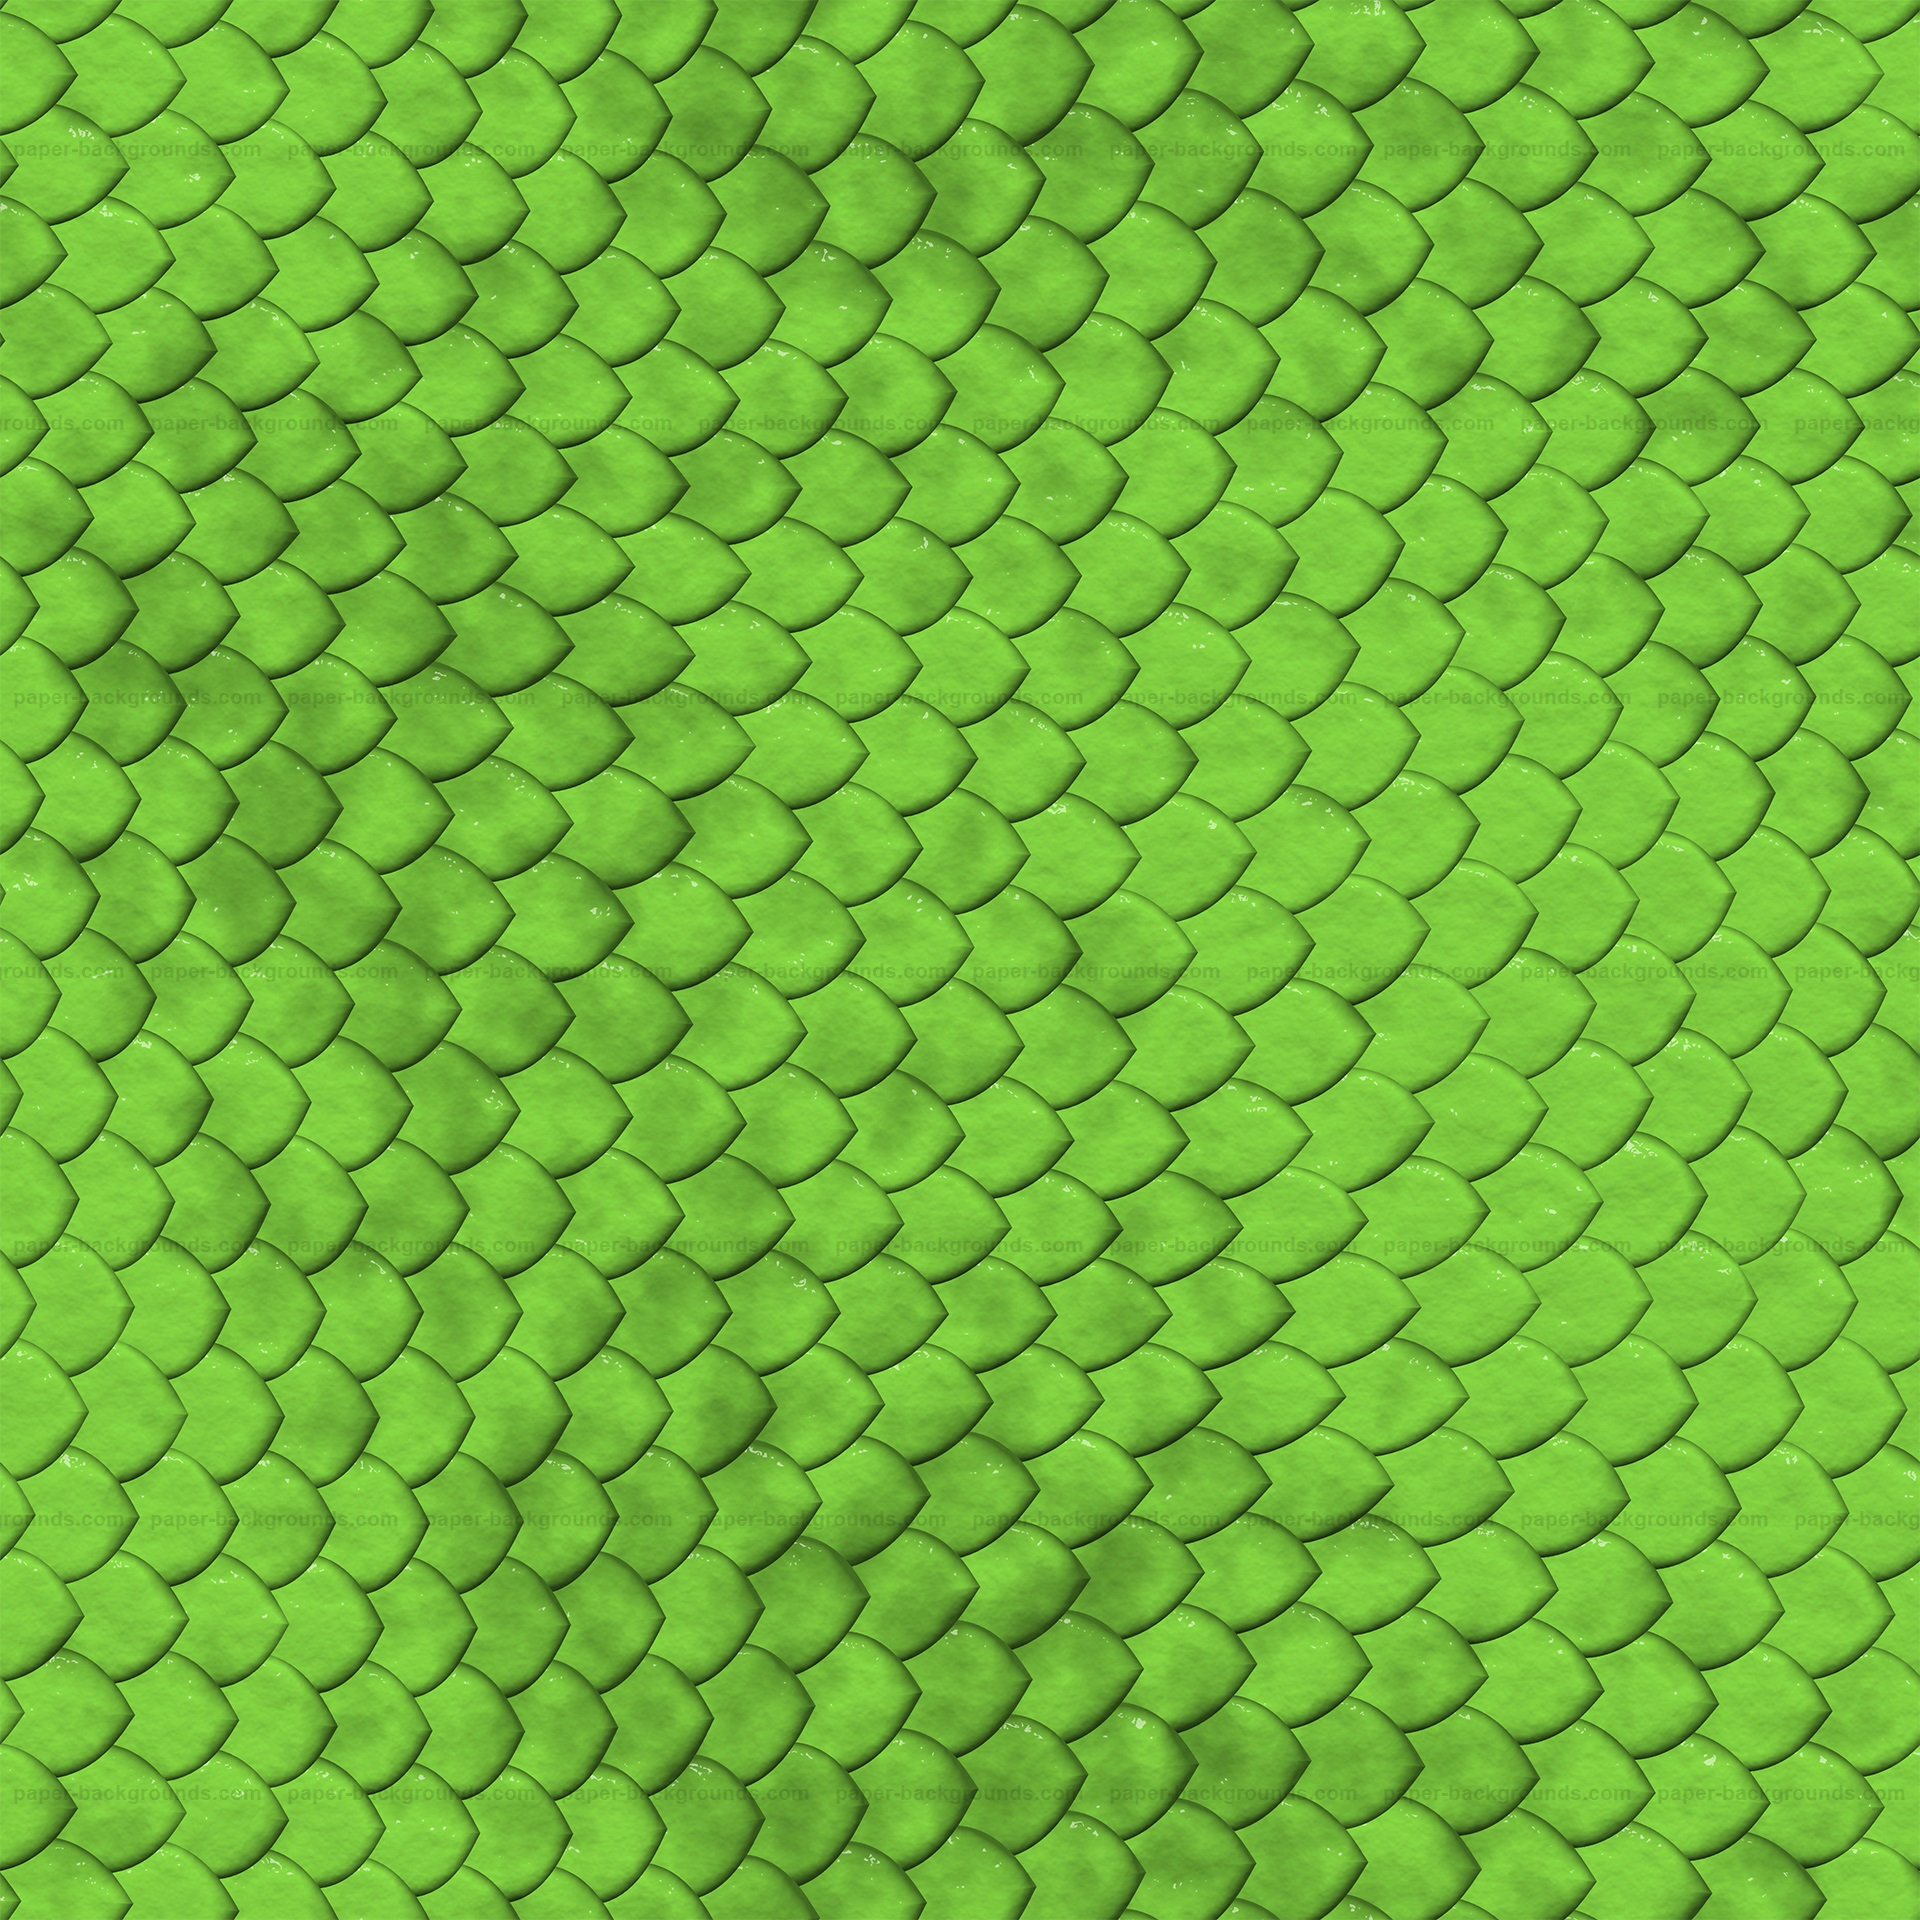 Seamless Green Snake Reptile Skin Texture HD